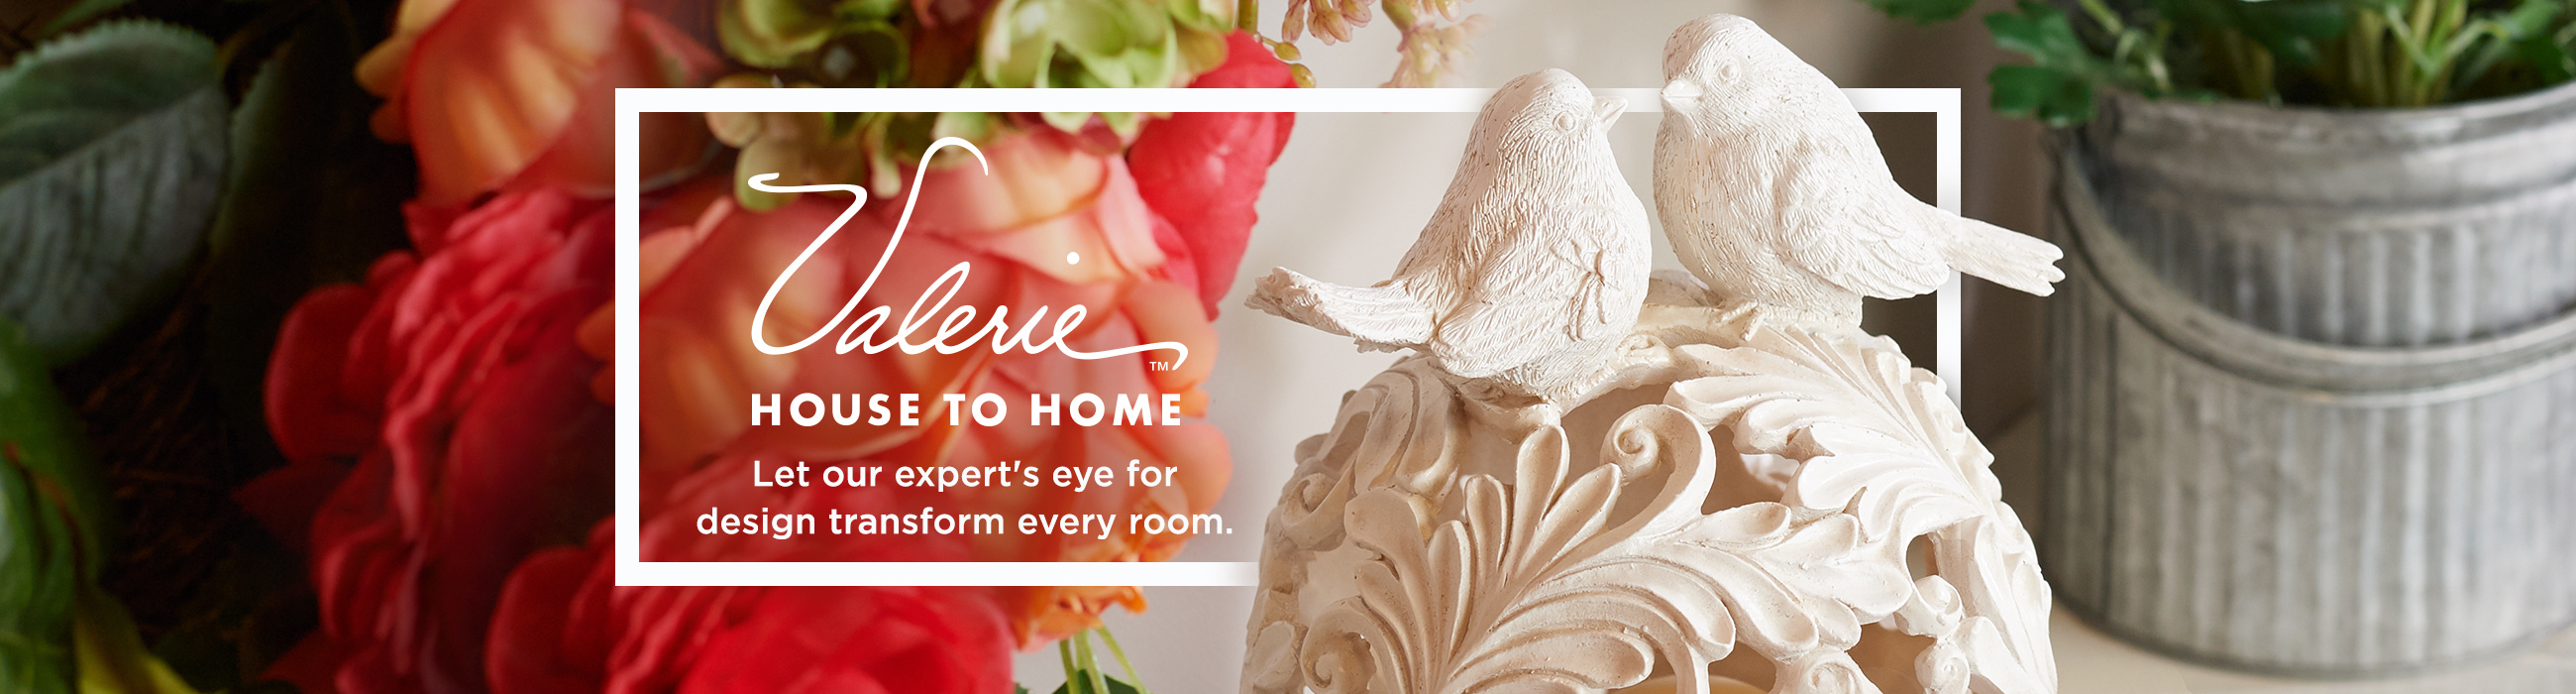 Valerie House to Home - Let our expert's eye for design transform every room.